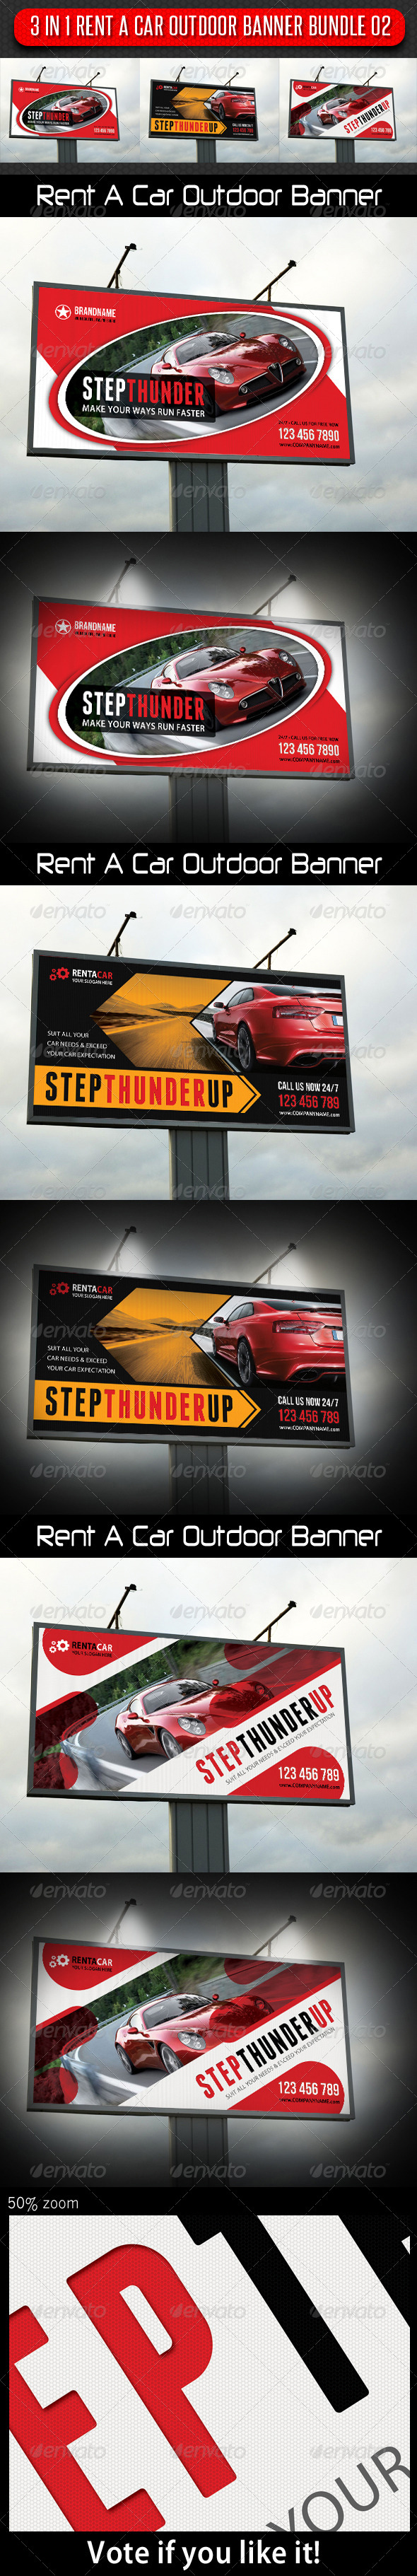 GraphicRiver 3 in 1 Rent A Car Outdoor Banner Bundle 02 6680571